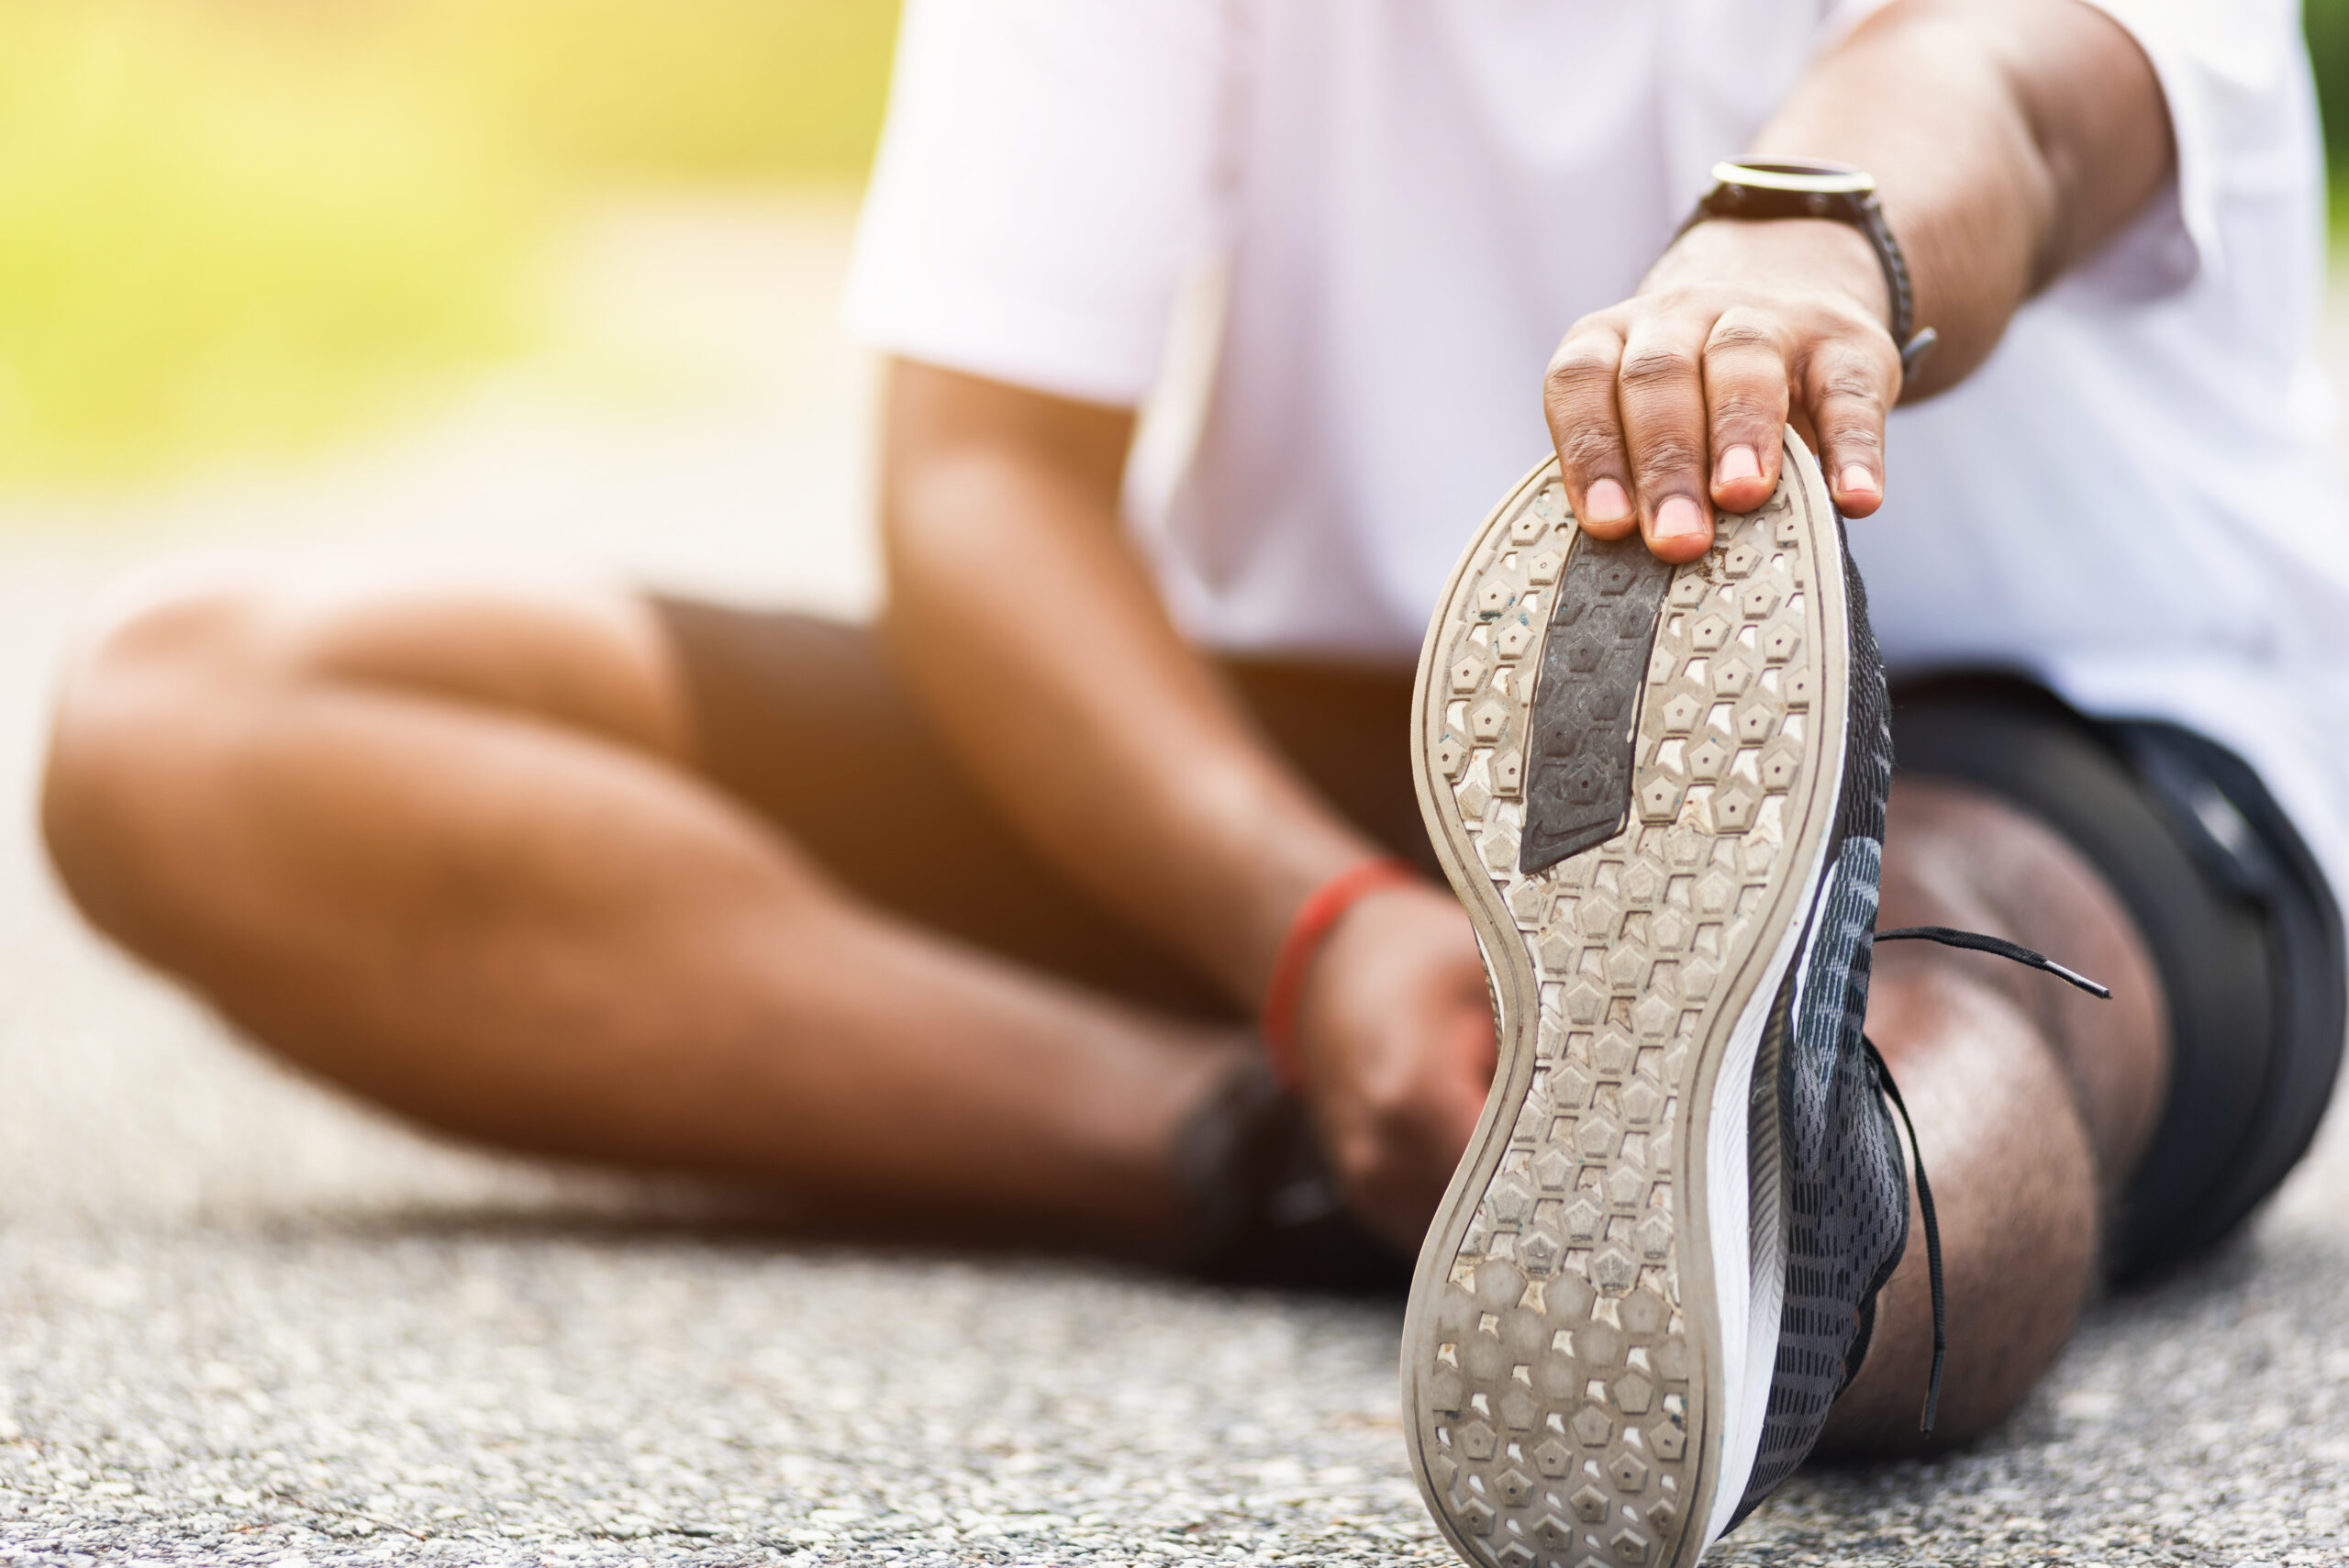 Runner stretching on pavement